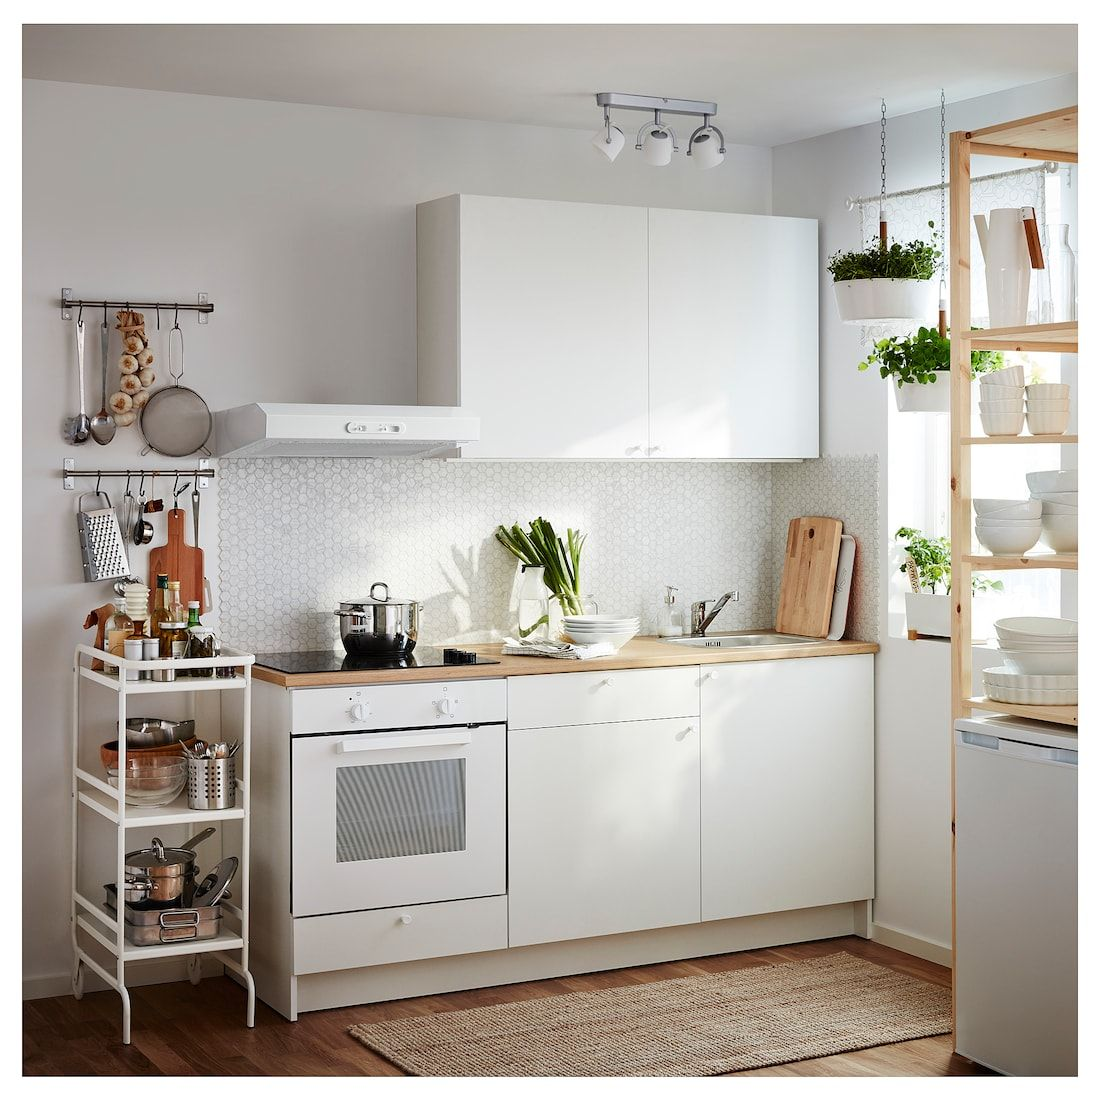 "Petite Cuisine Equipée: Base Cabinet With Doors And Drawer, White, 48x24x36 "" En"